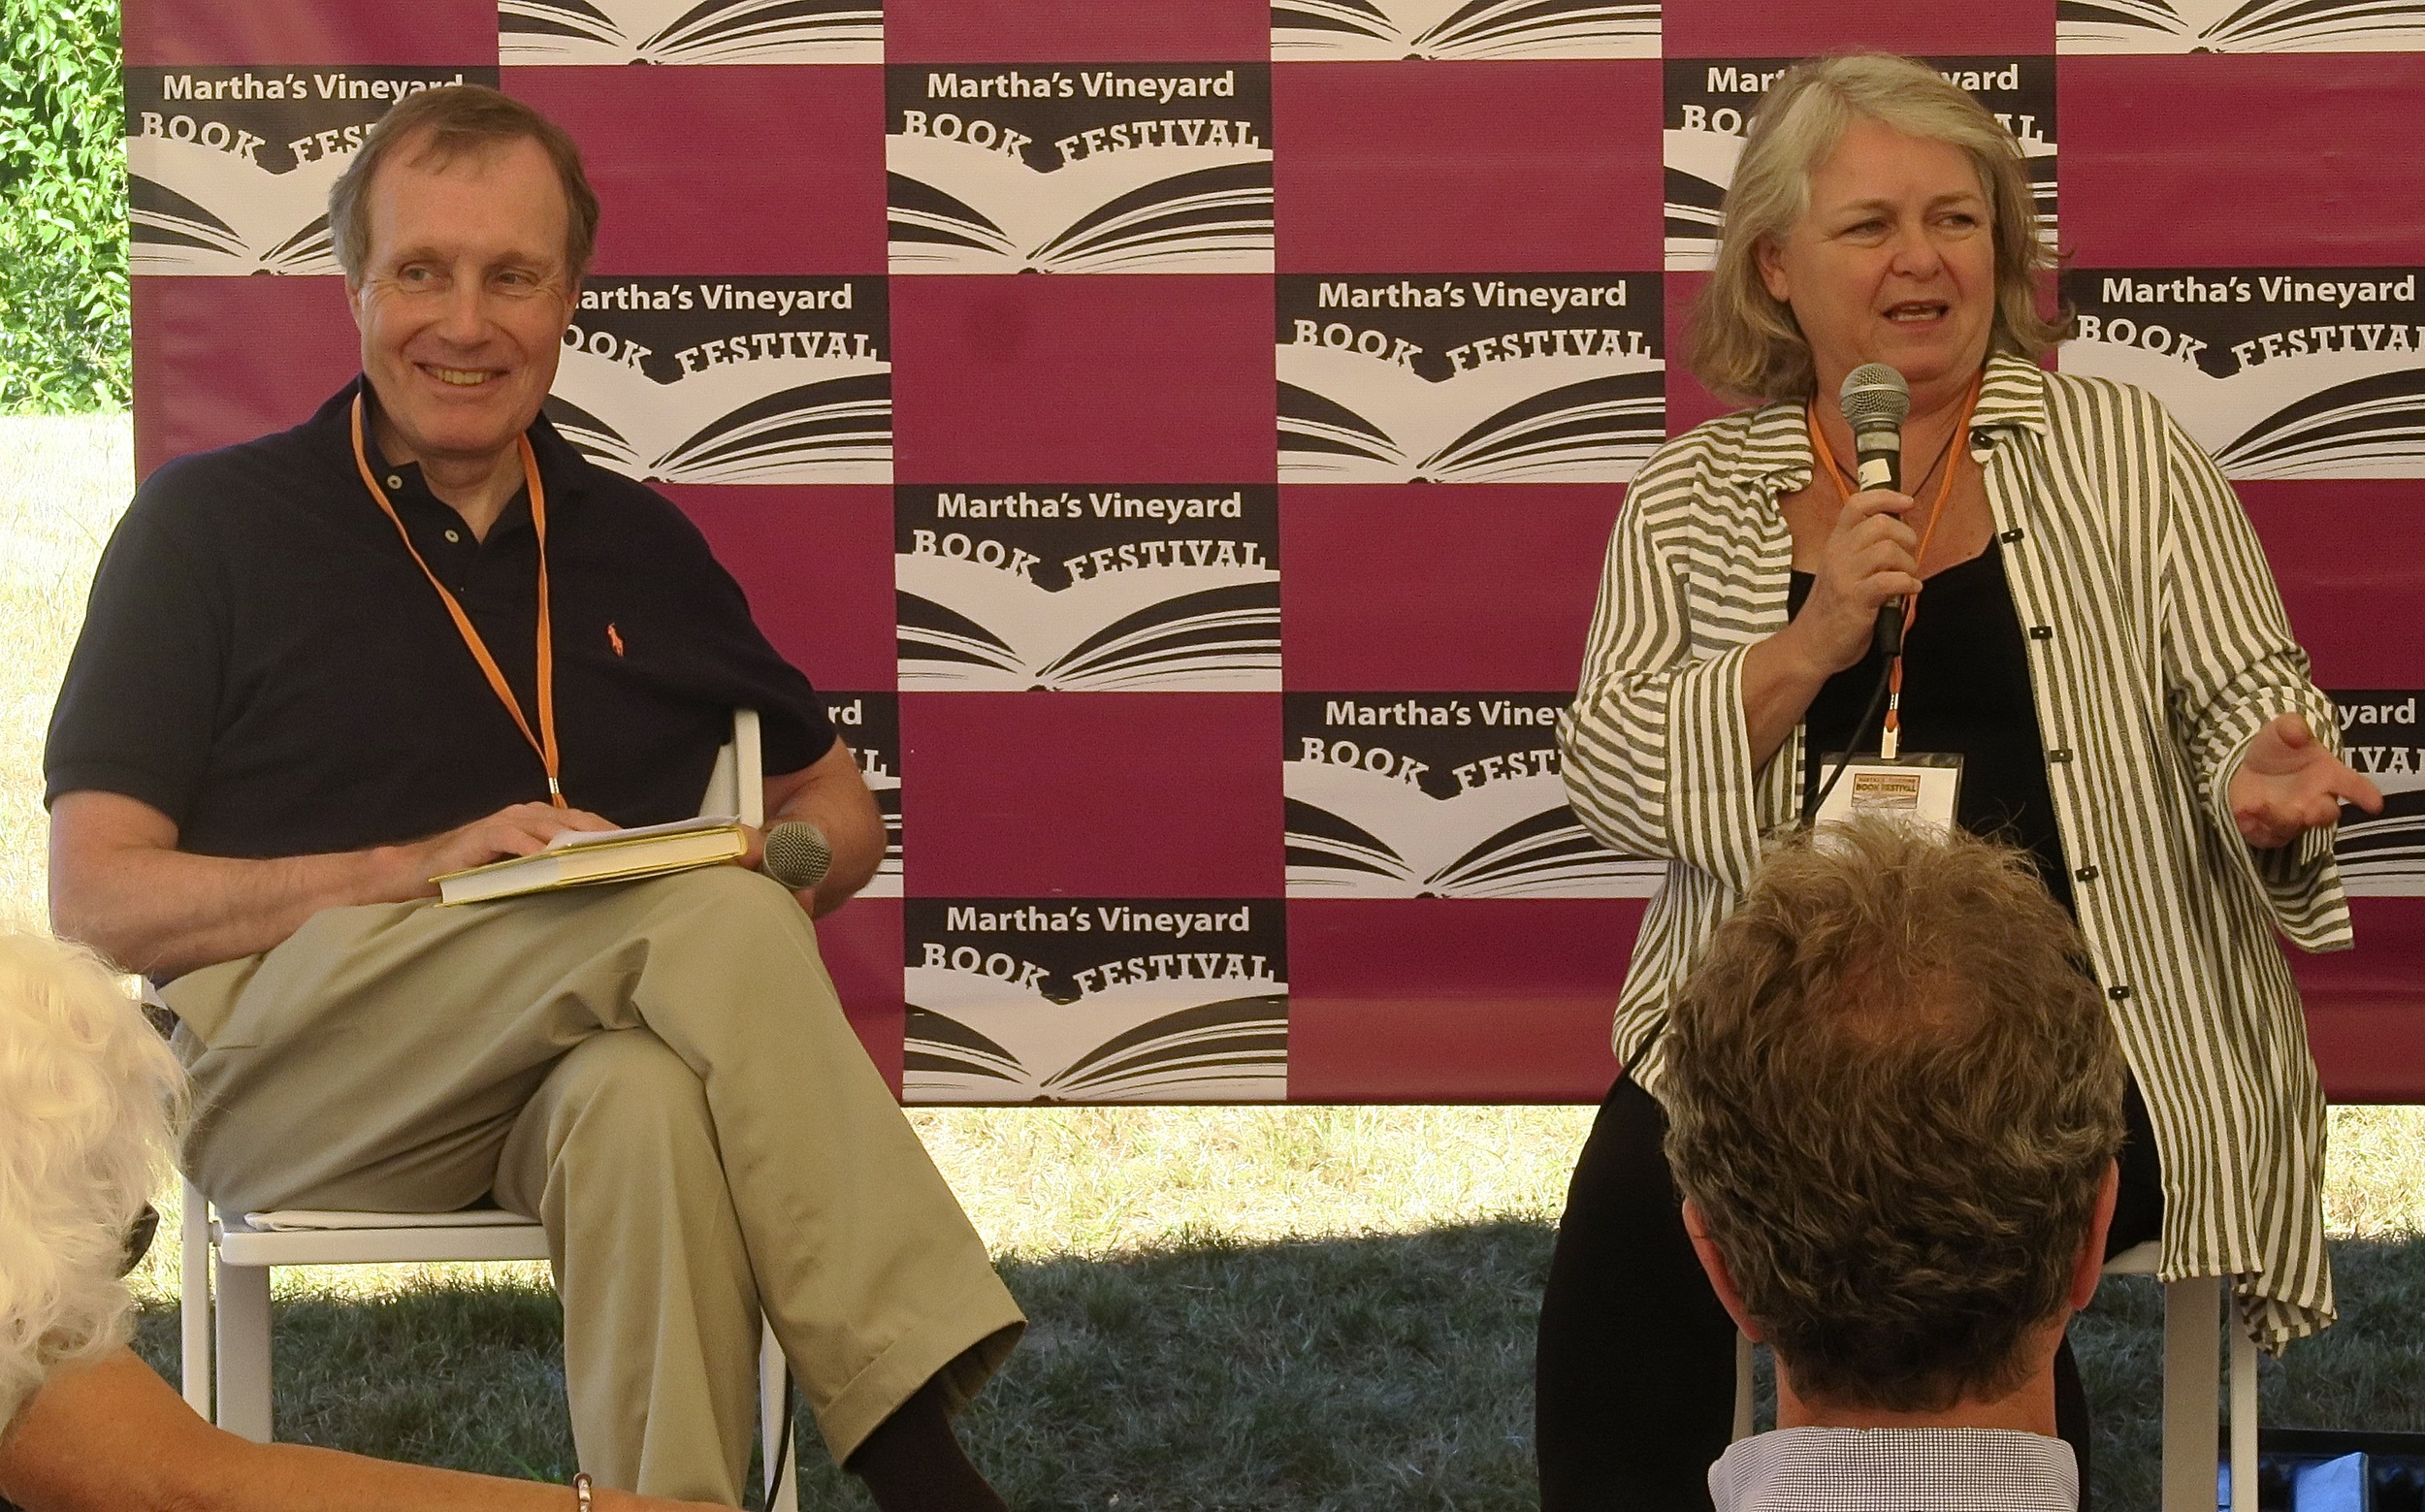 Mary Norris, interviewed by George Gibson